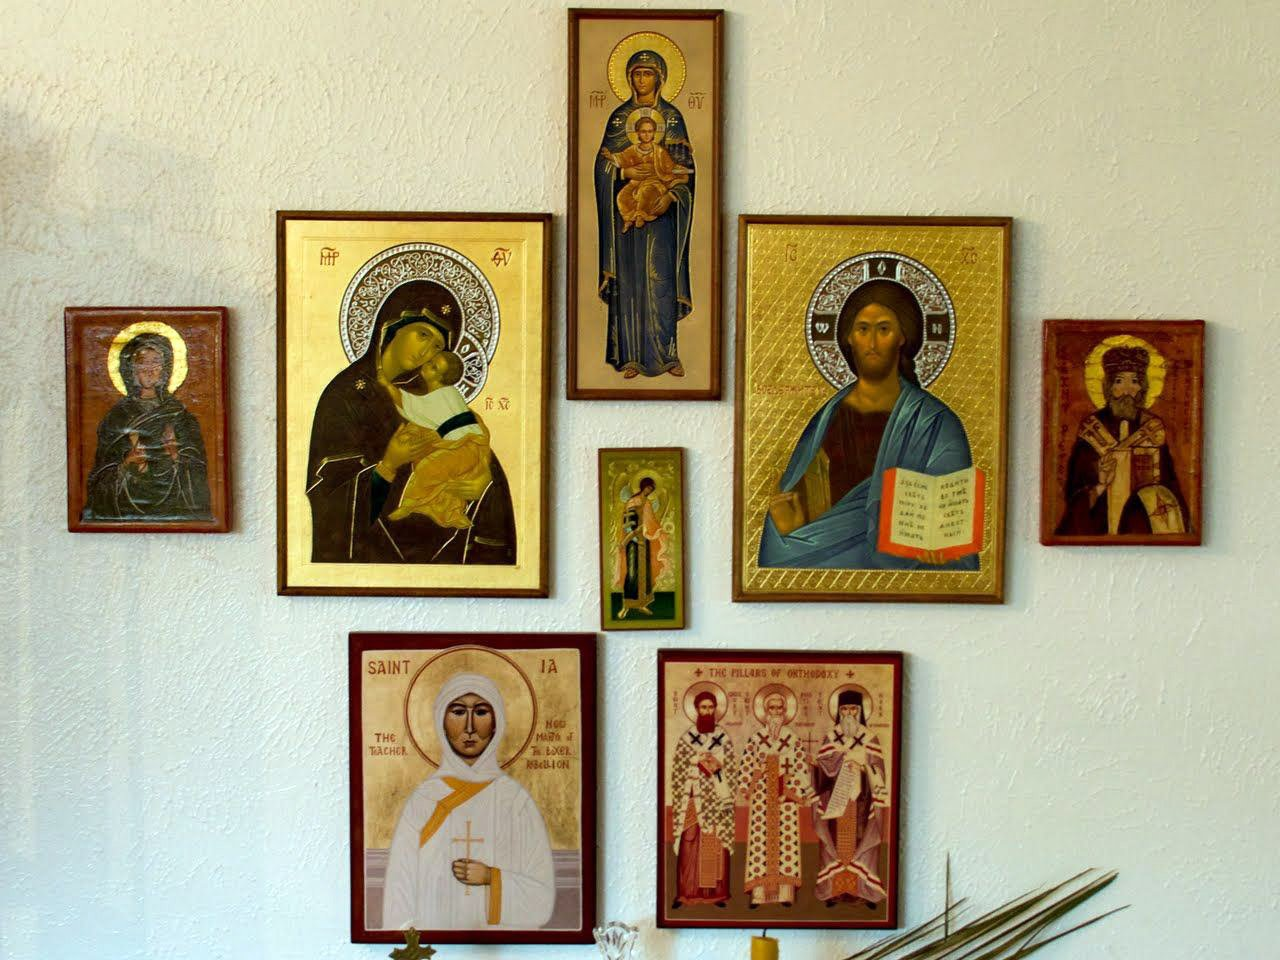 Tips for dating slavic women - Icons on walls